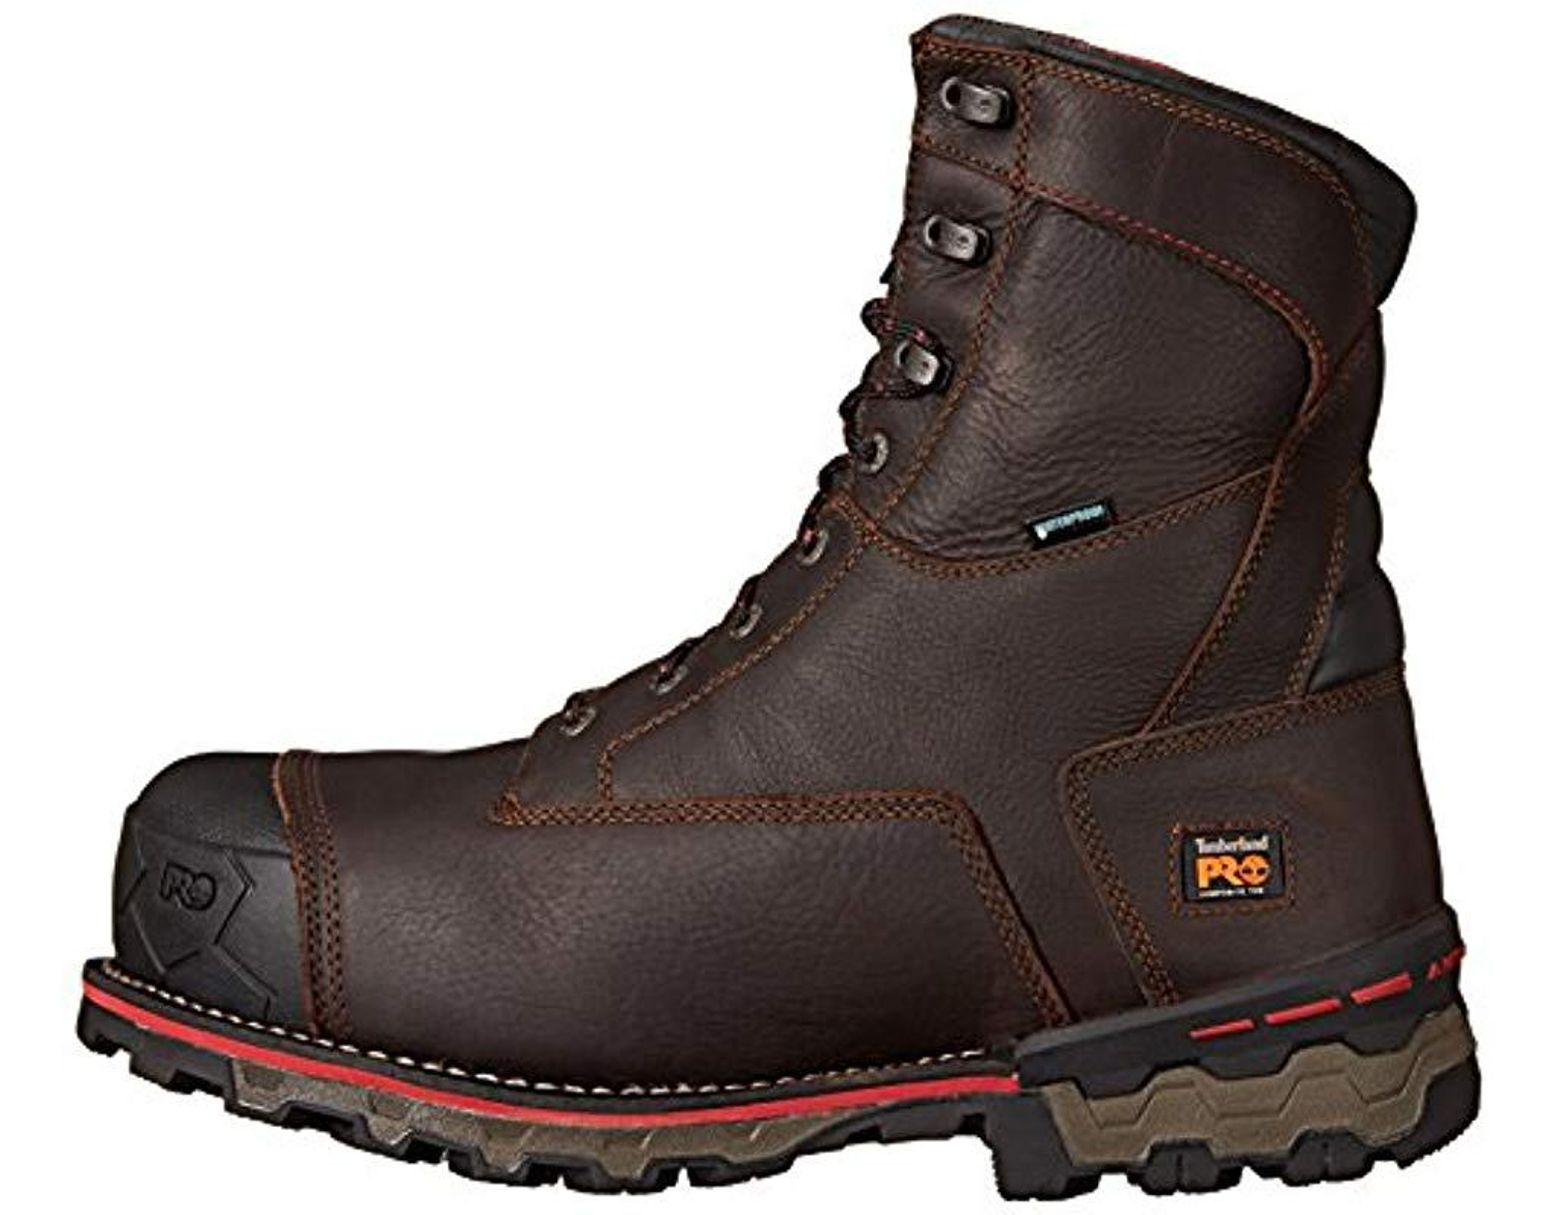 2cd87ade972 Men's Brown 8 Boondock 1000g Composite Safety Toe Waterproof Insulated